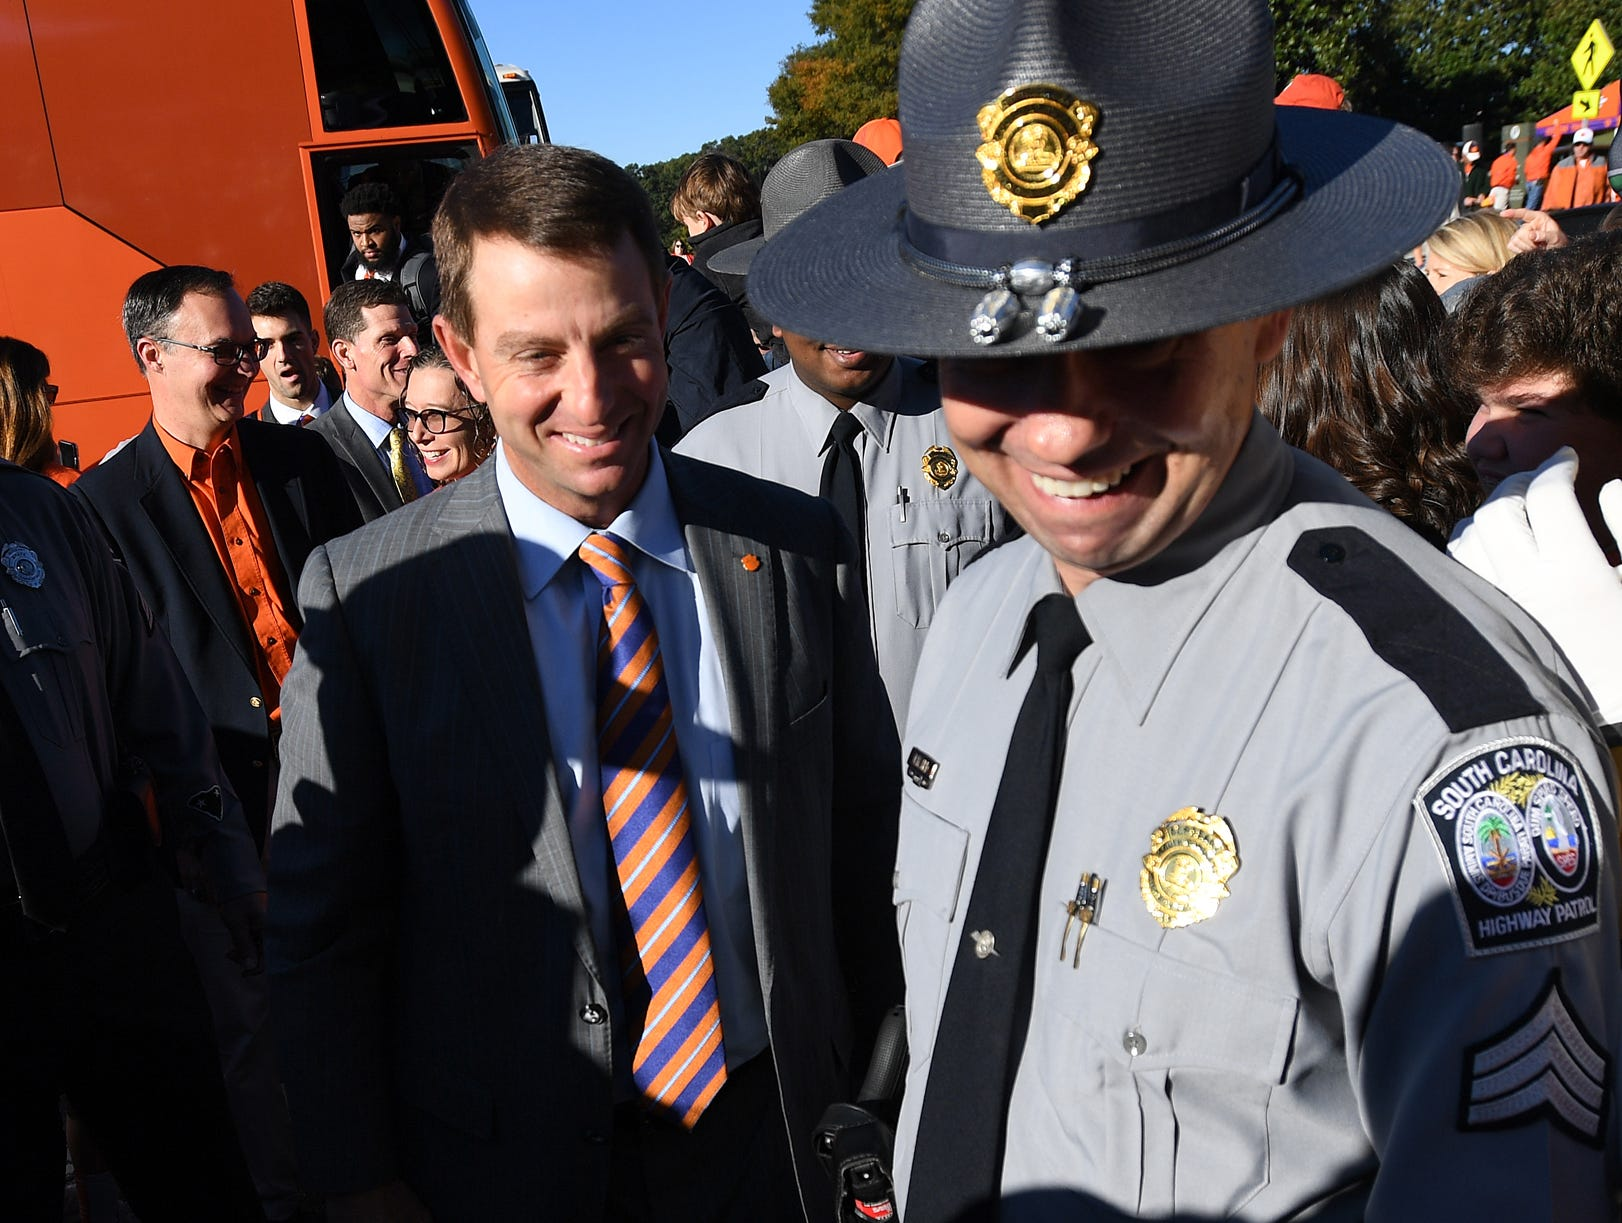 Clemson head coach Dabo Swinney takes part in Tiger Walk before the Tiger's game against Louisville Saturday, November 3, 2018 at Clemson's Memorial Stadium.